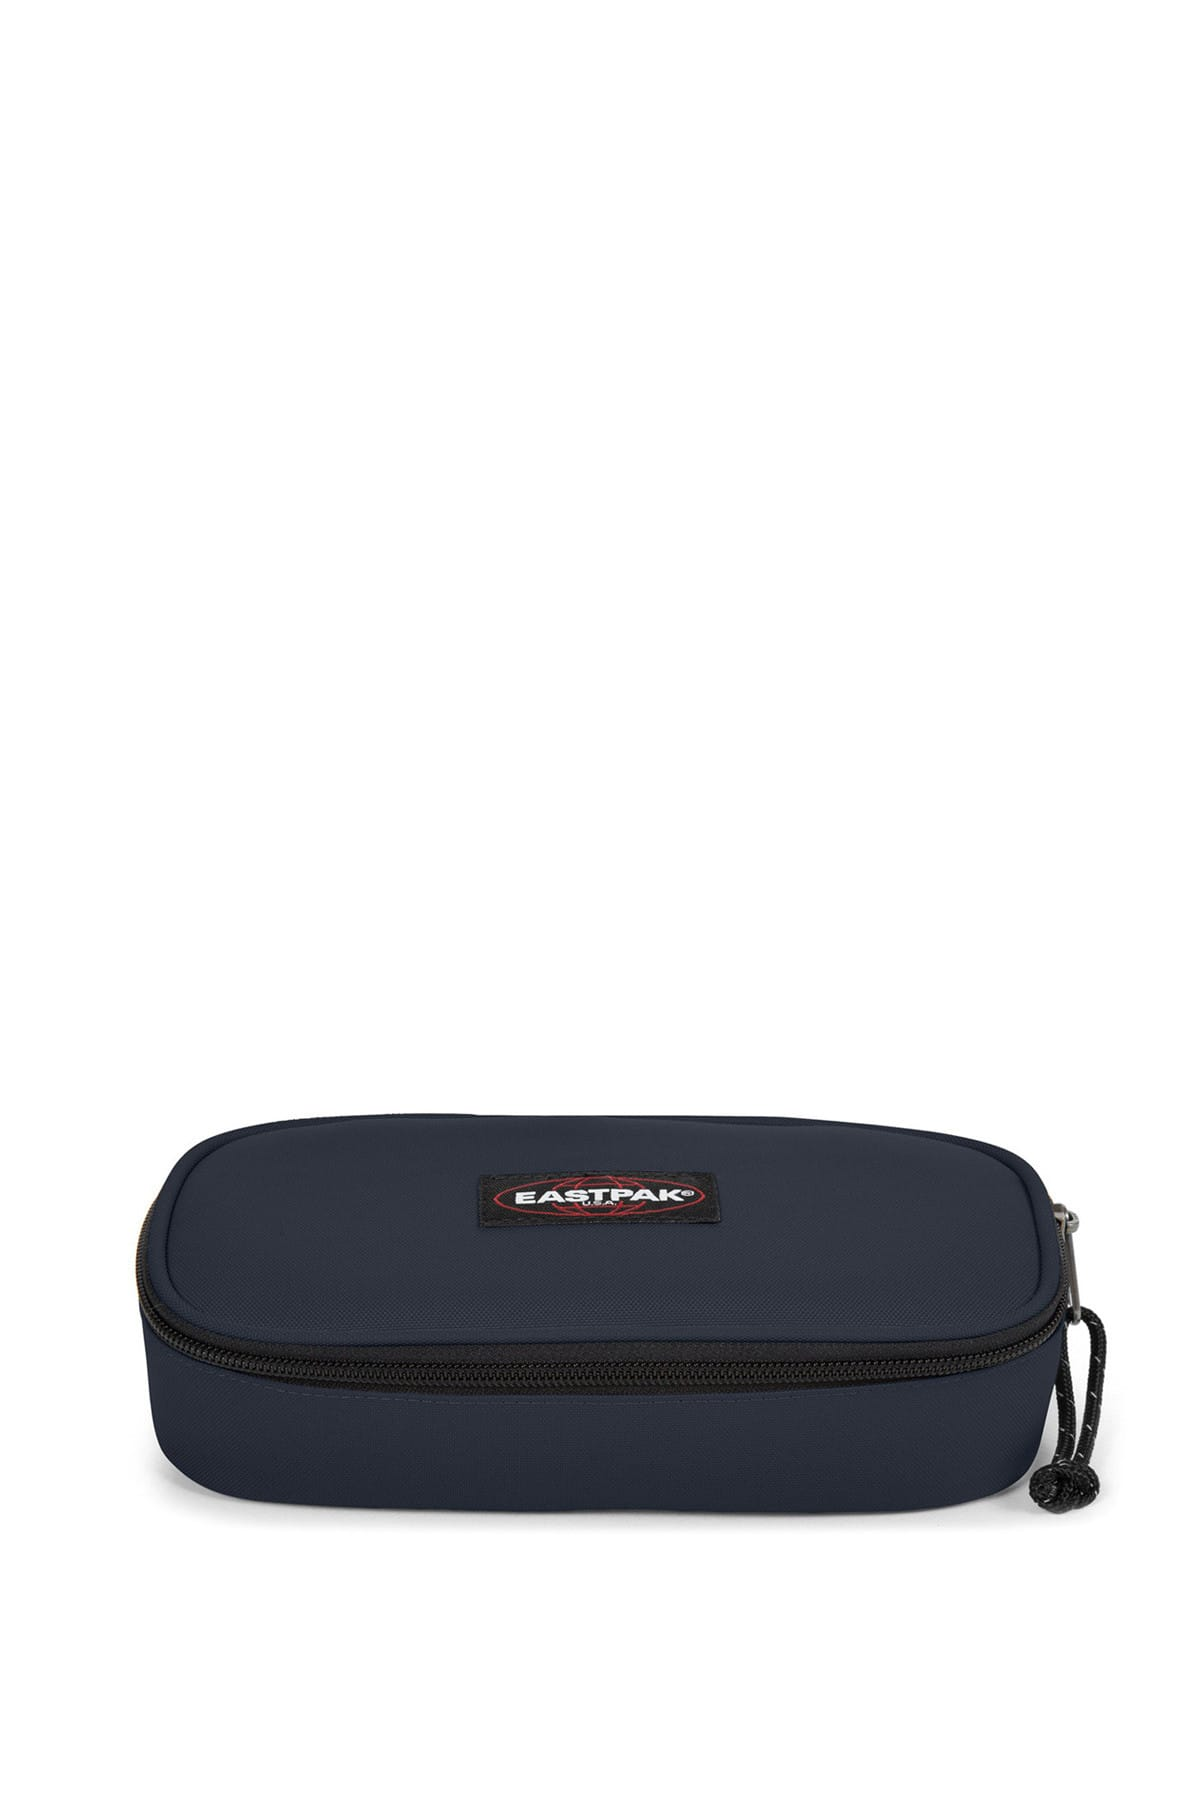 Eastpak Oval Single Cloud Navy Kalem Çantası Ürün Resmi